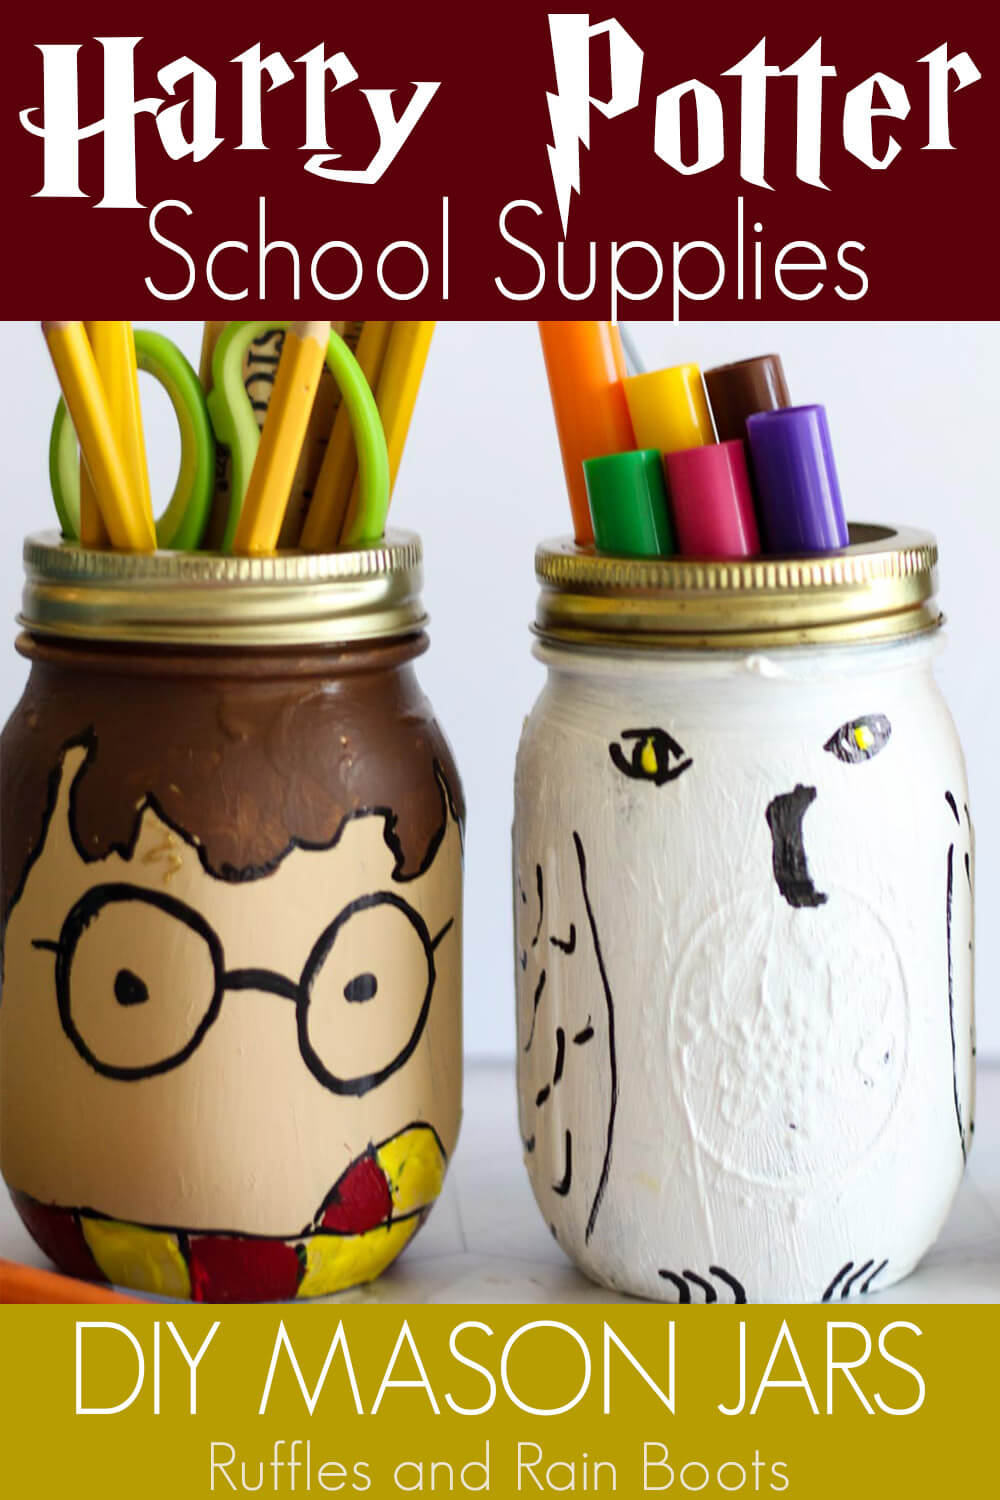 harry potter mason jar craft idea for school supplies with text which reads harry potter school supplies diy mason jars